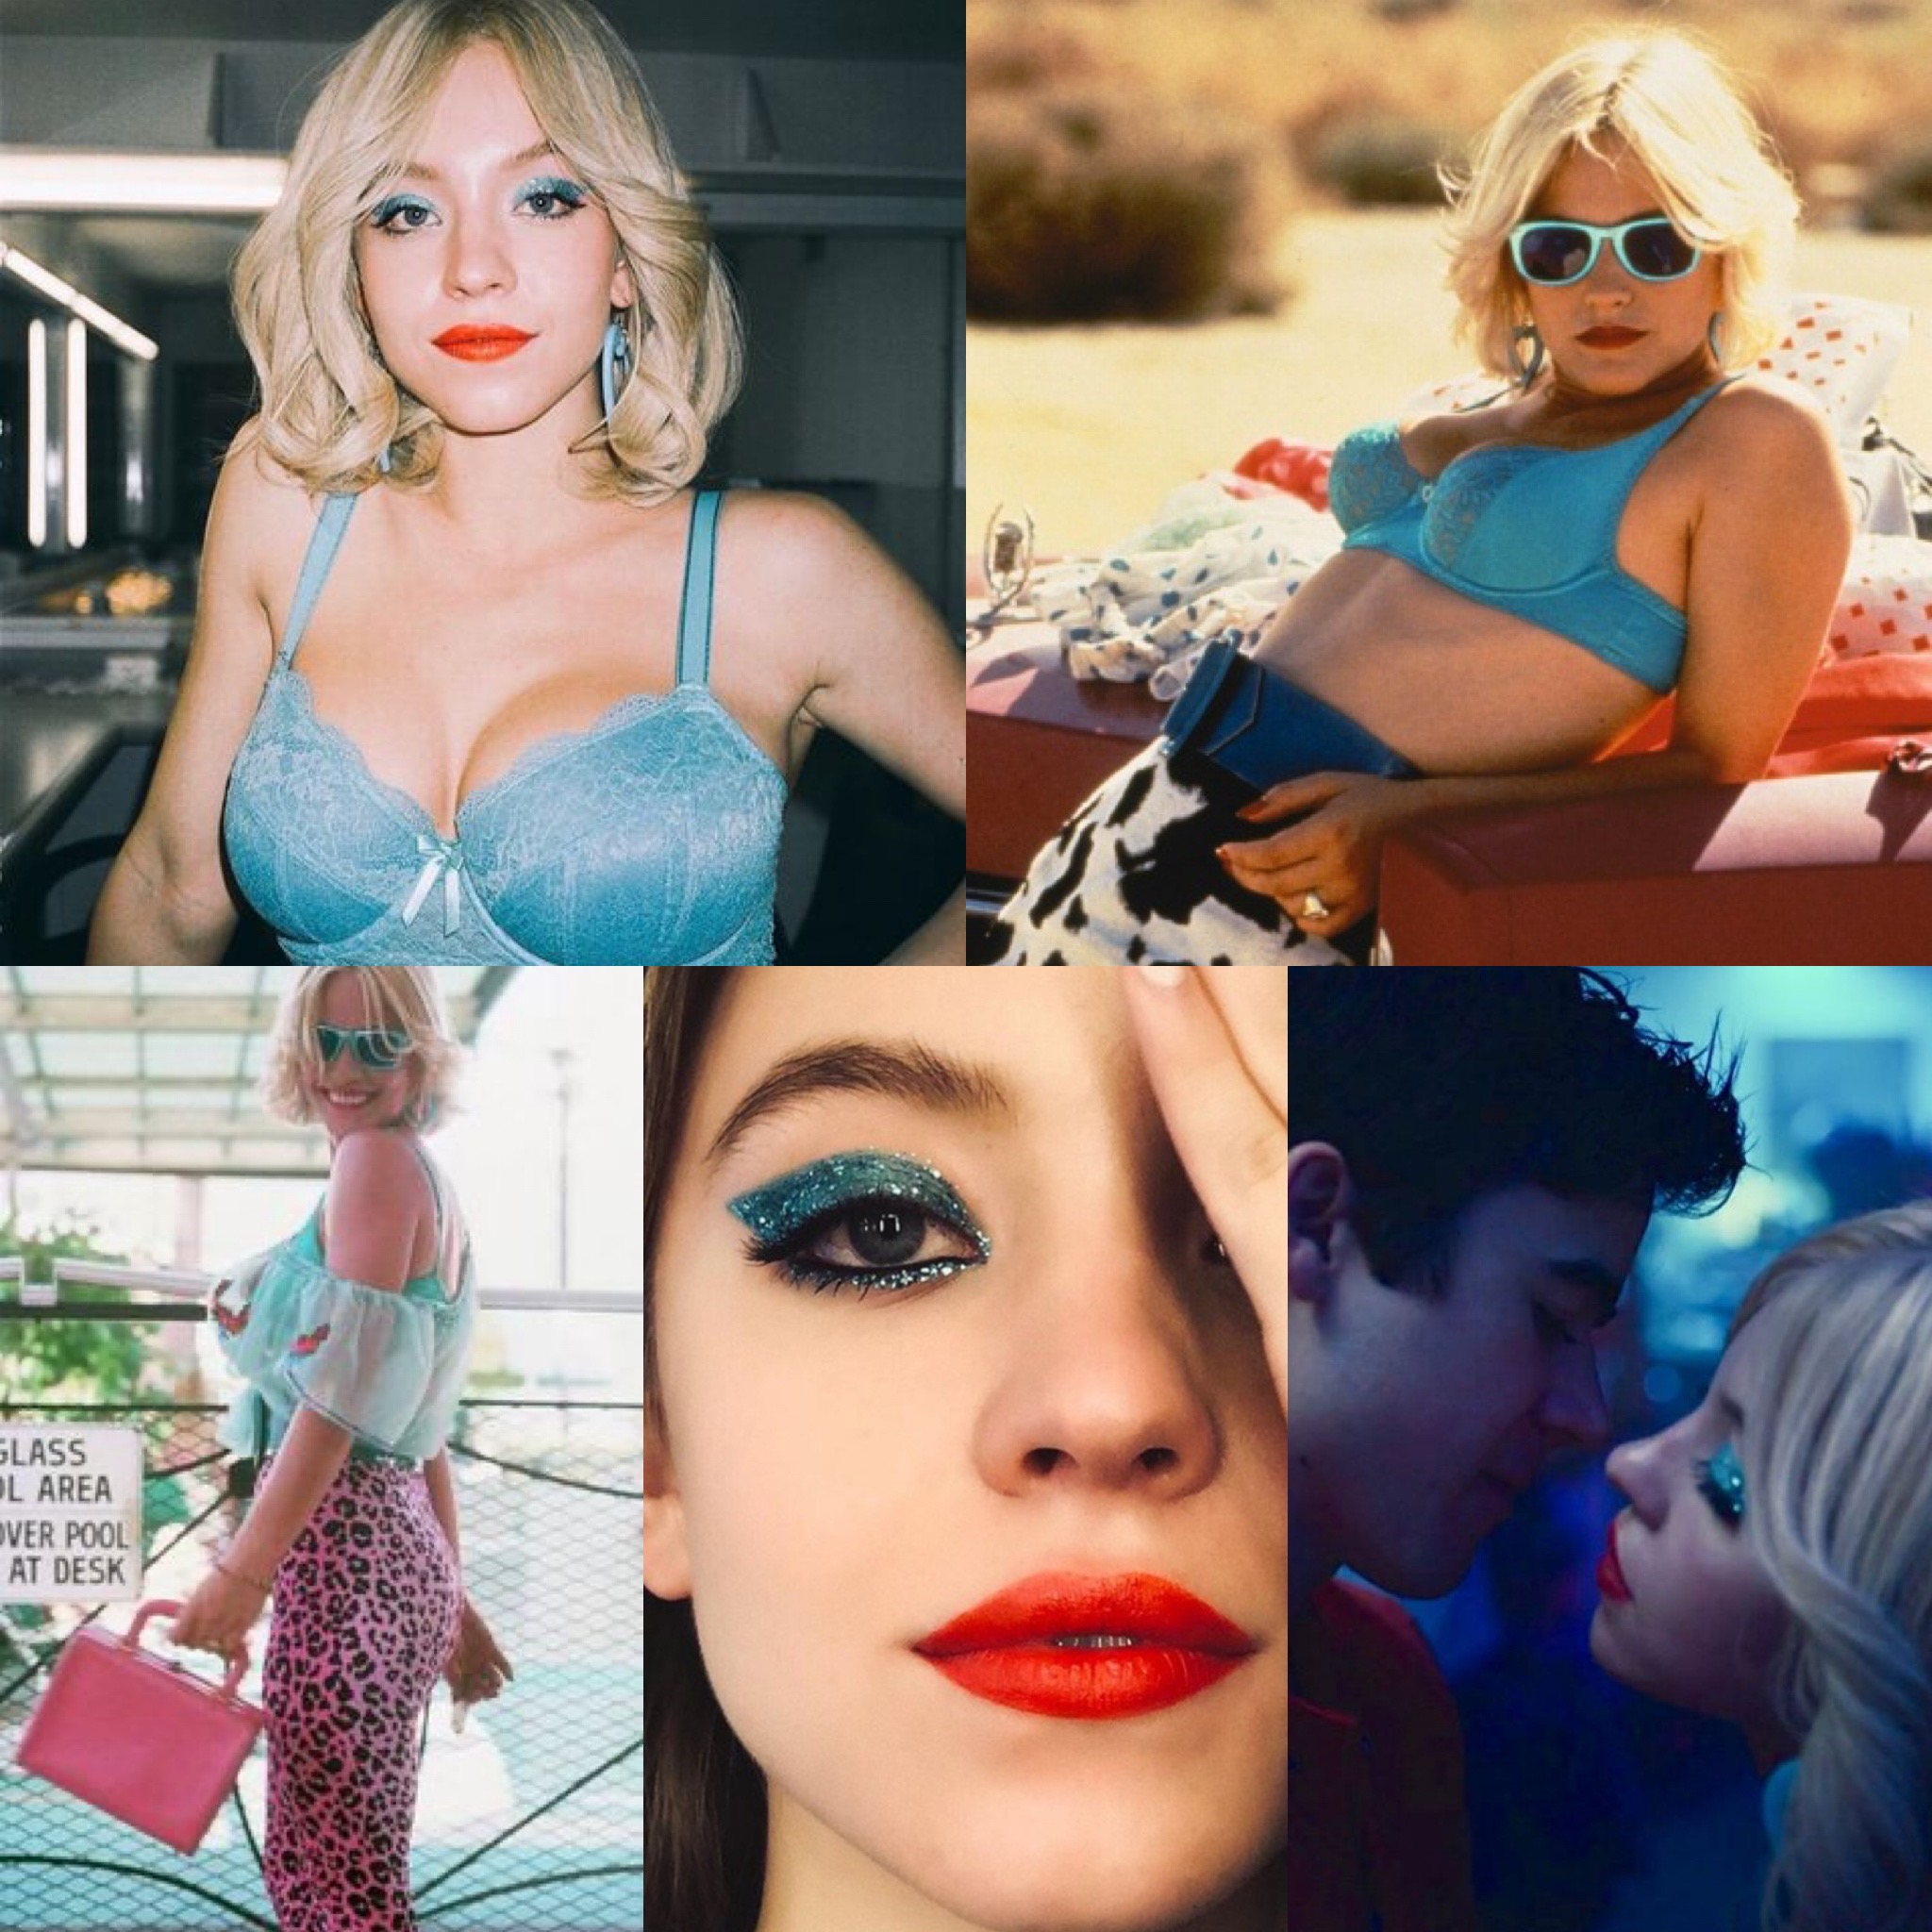 Images | (Top Row) cosmopolitan.com; vice.com (Bottom Row) vice.com; Instagram: @kirinrider; HBO